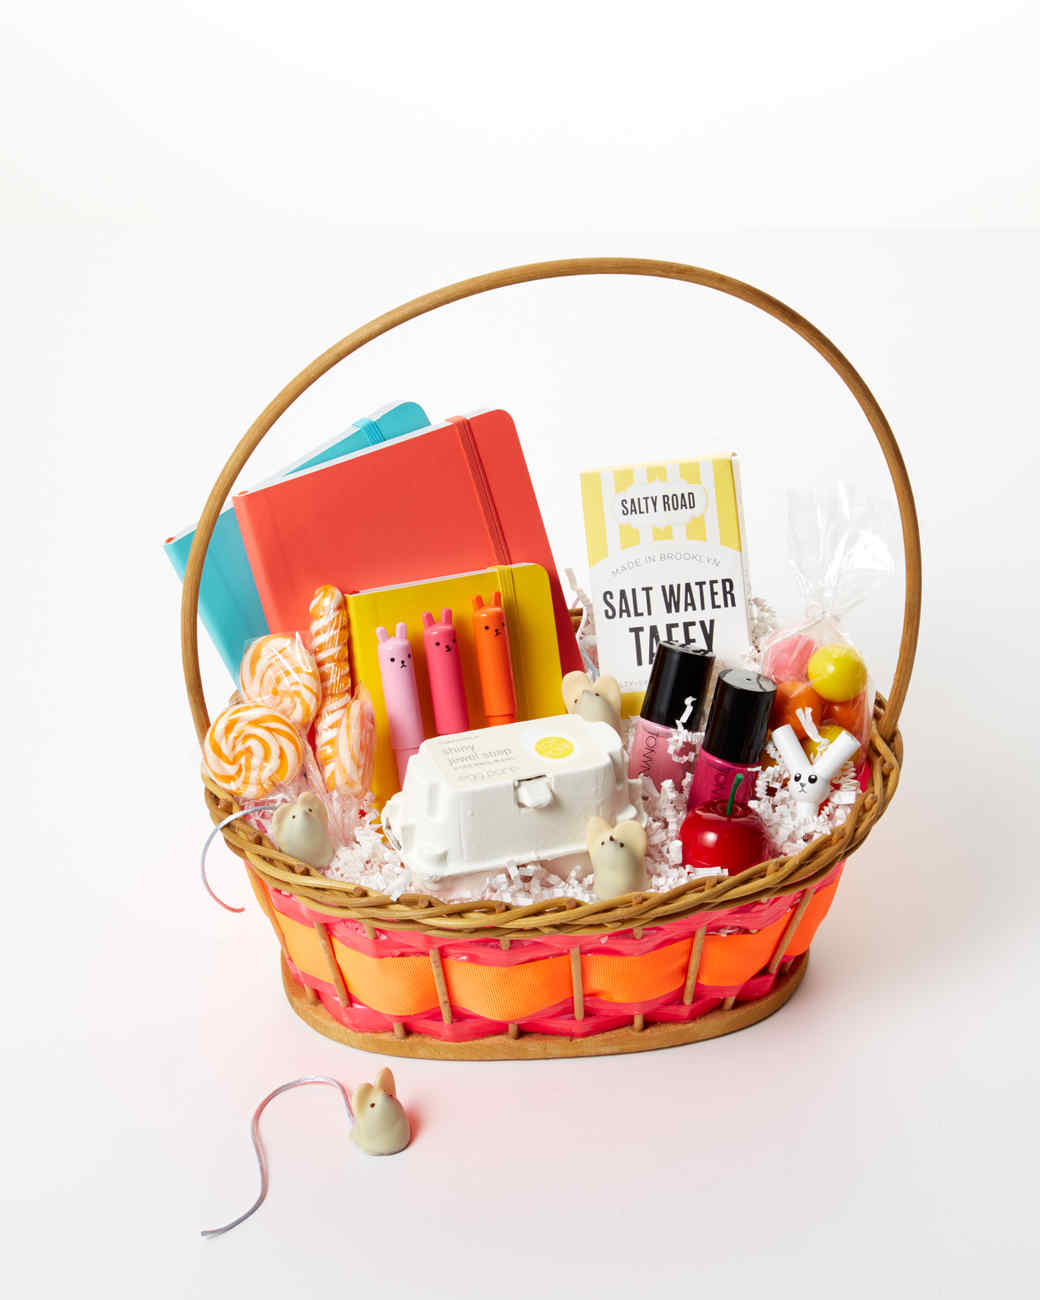 Amusing Teen Easter Basket 2666 D112789 0116 Vert Easter Gift Ideas Wife Easter Gift Ideas Girlfriend ideas Easter Gift Ideas